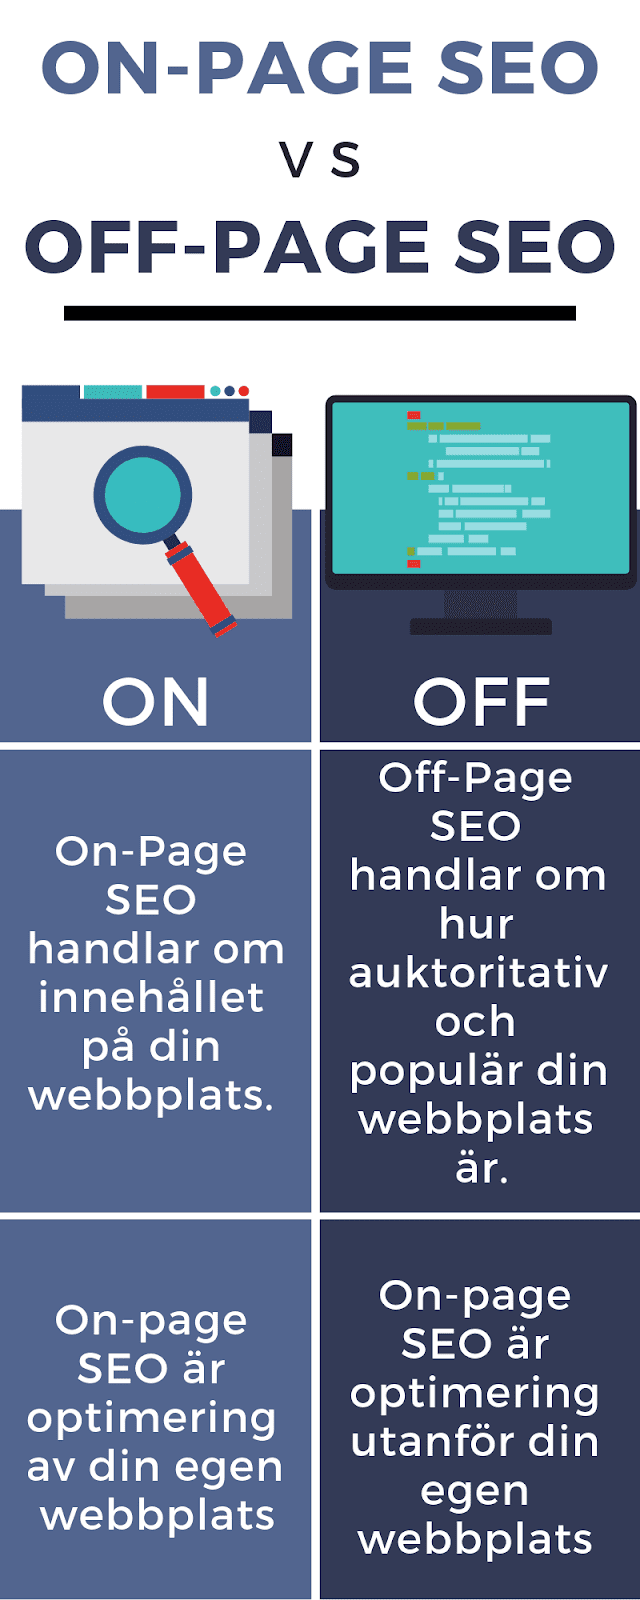 ON Page SEO vs OFF Page SEO